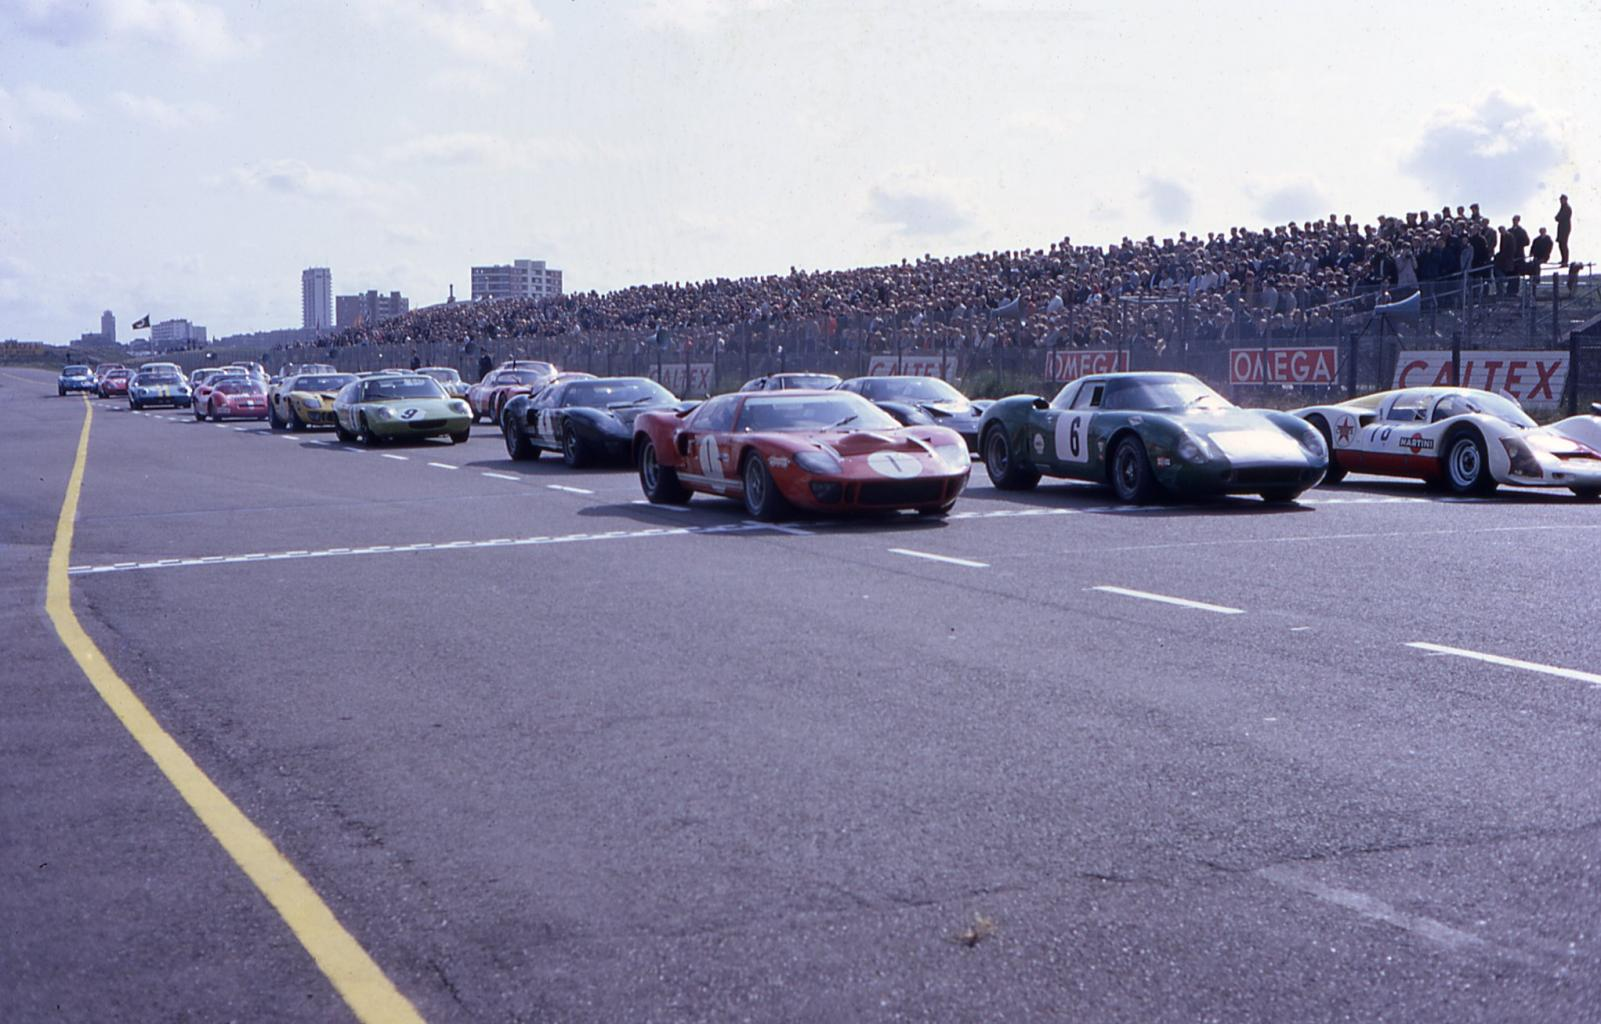 P1001-030-line-up-spa-may-68-jpg